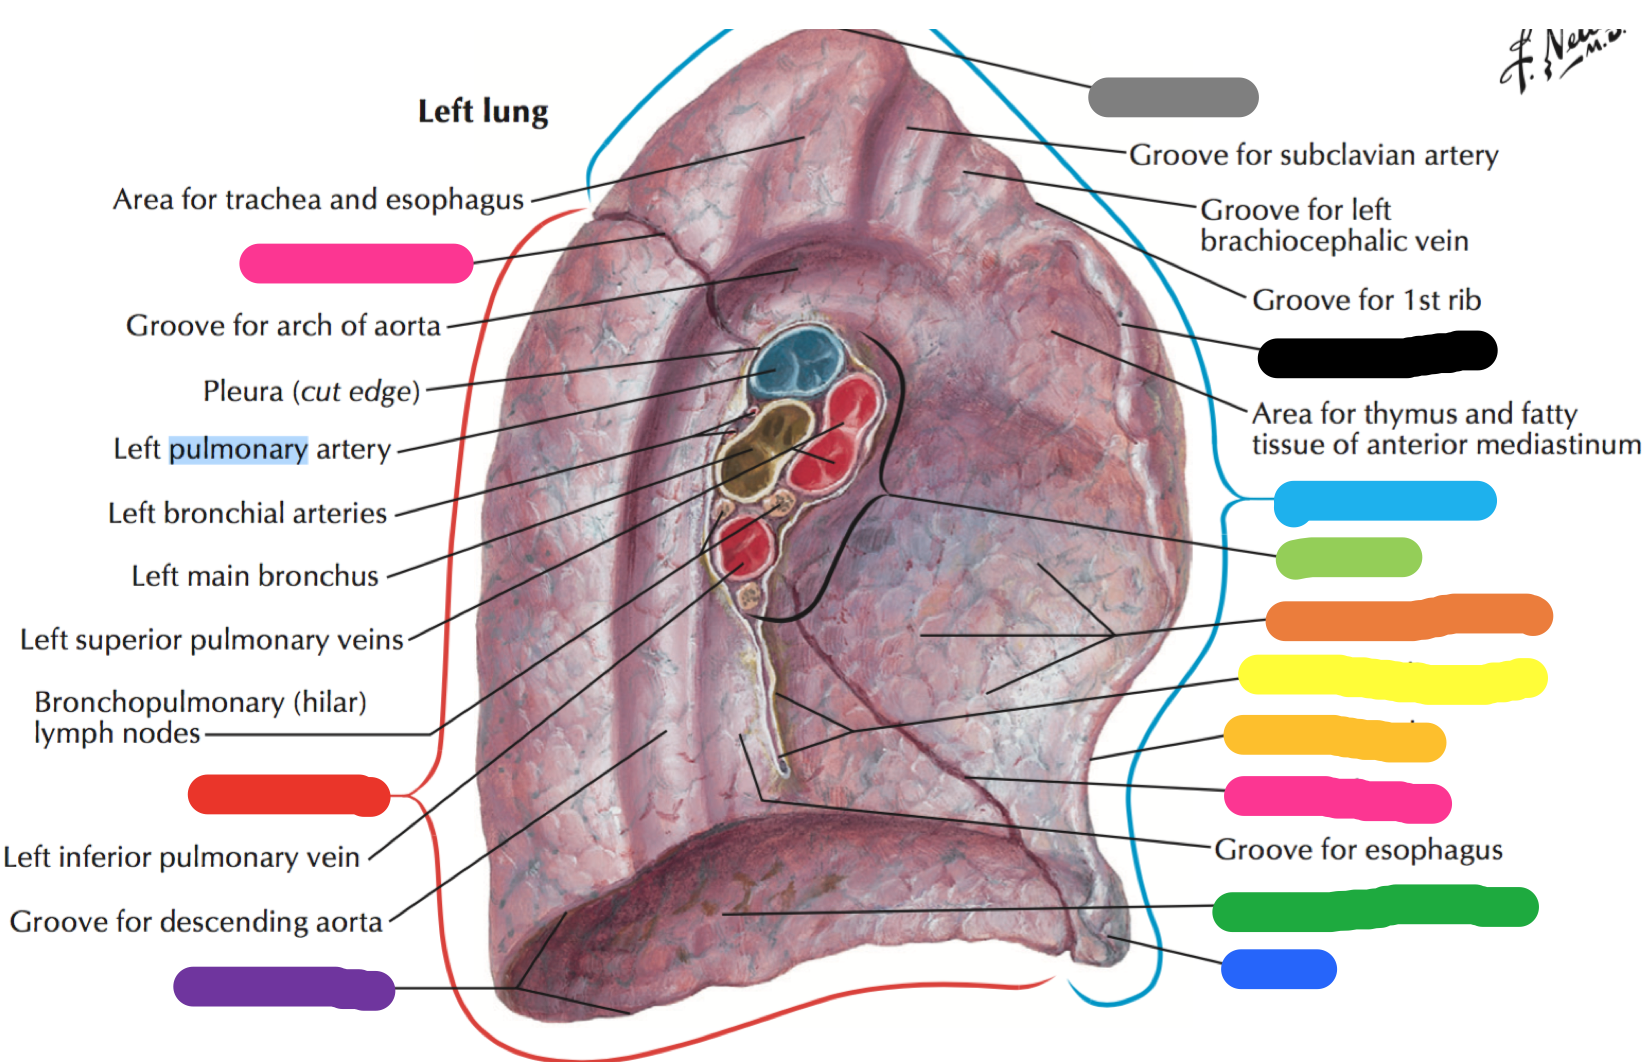 PUL: Wk 1 Anatomy Gross Lung 1 (gross lung anatomy 1) Flashcards ...